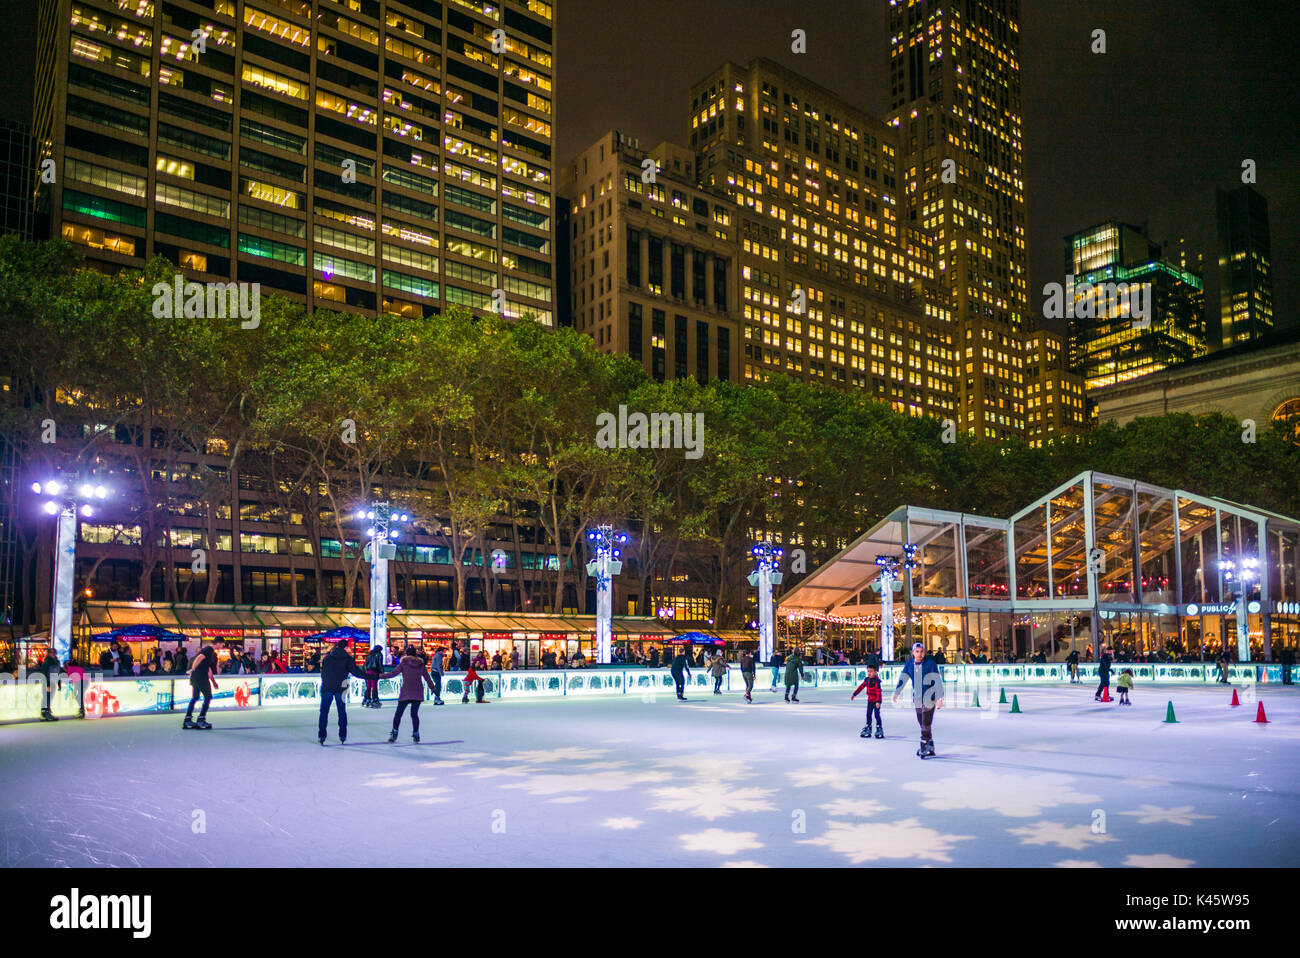 Autumn Skating Stock Photos & Autumn Skating Stock Images - Alamy